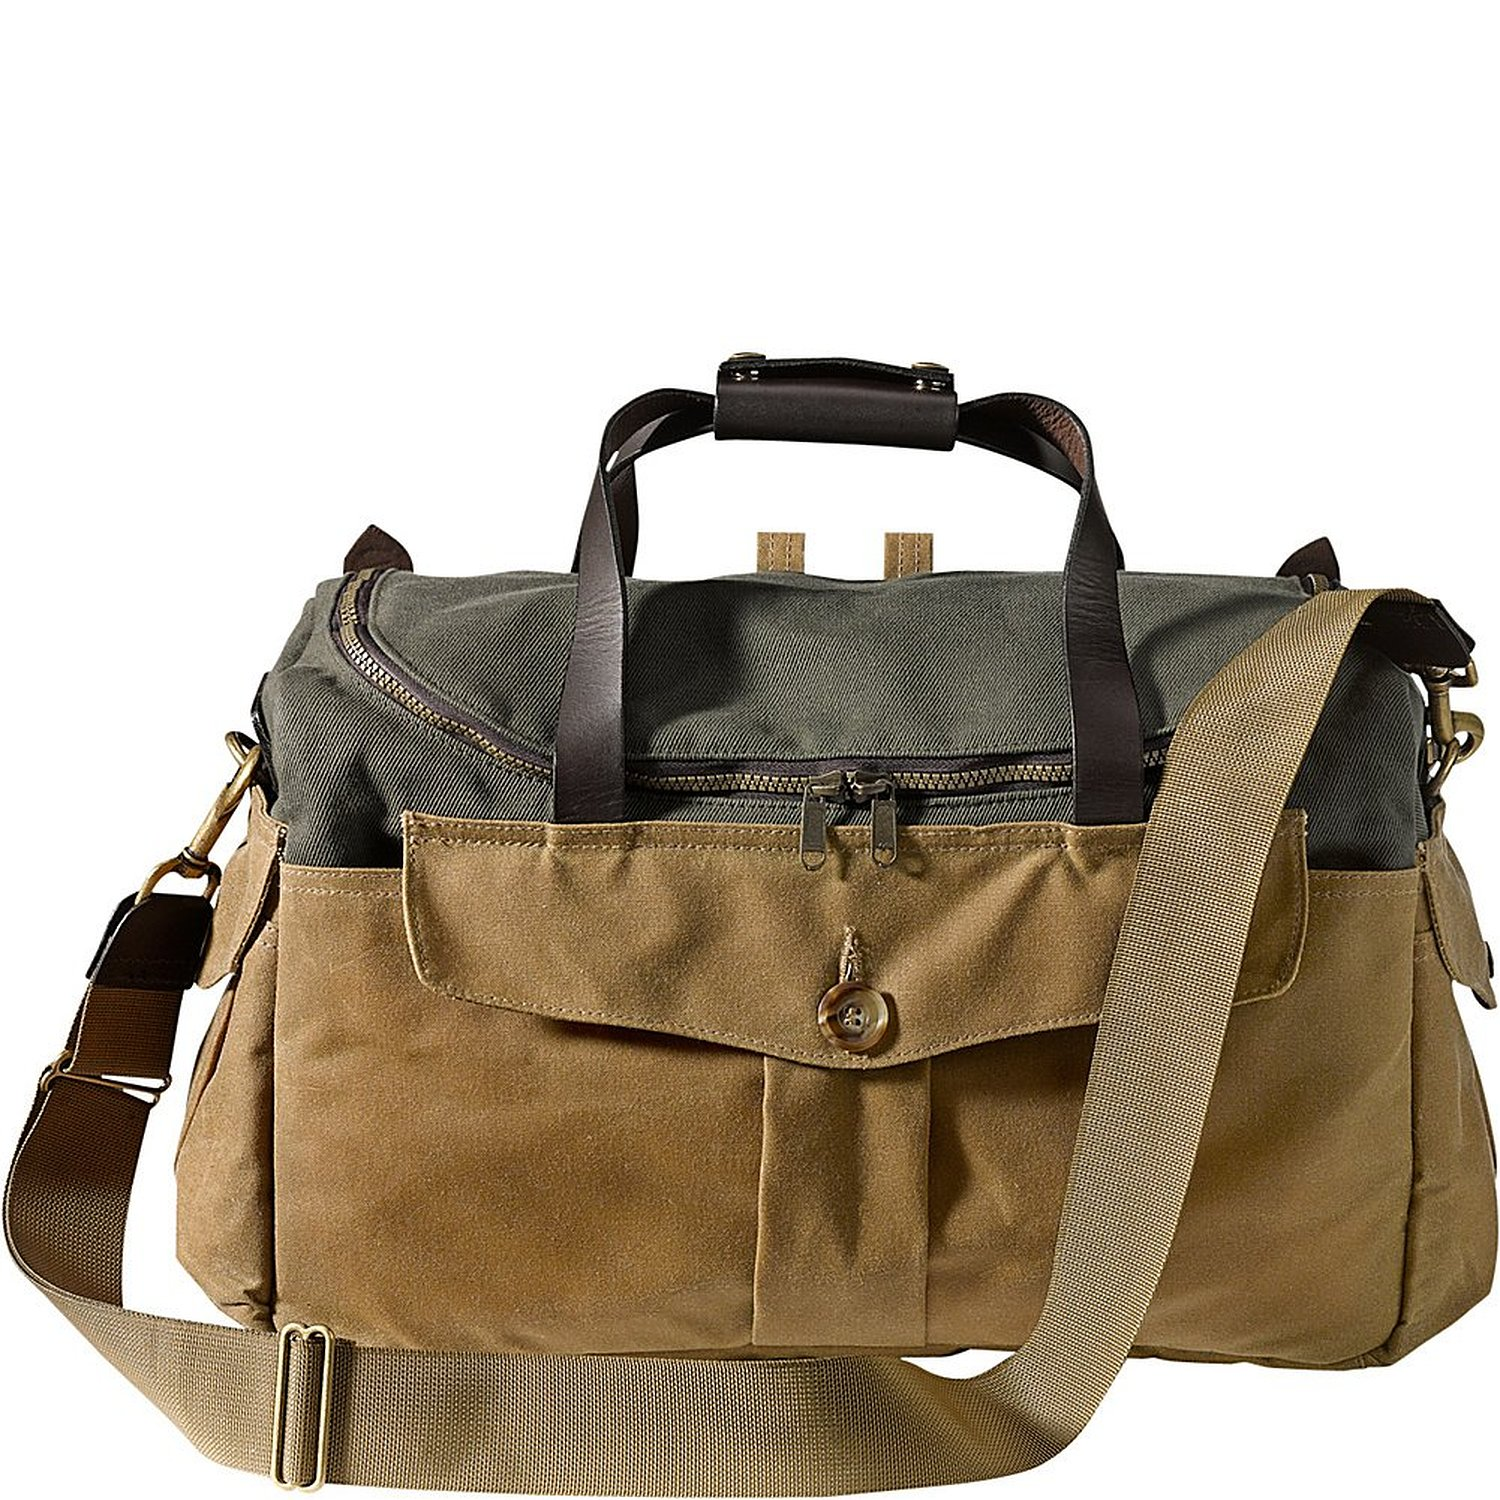 Buy Filson 70143 Original Sportsman Camera Bag in Cheap Price on ... fc1ac8b263